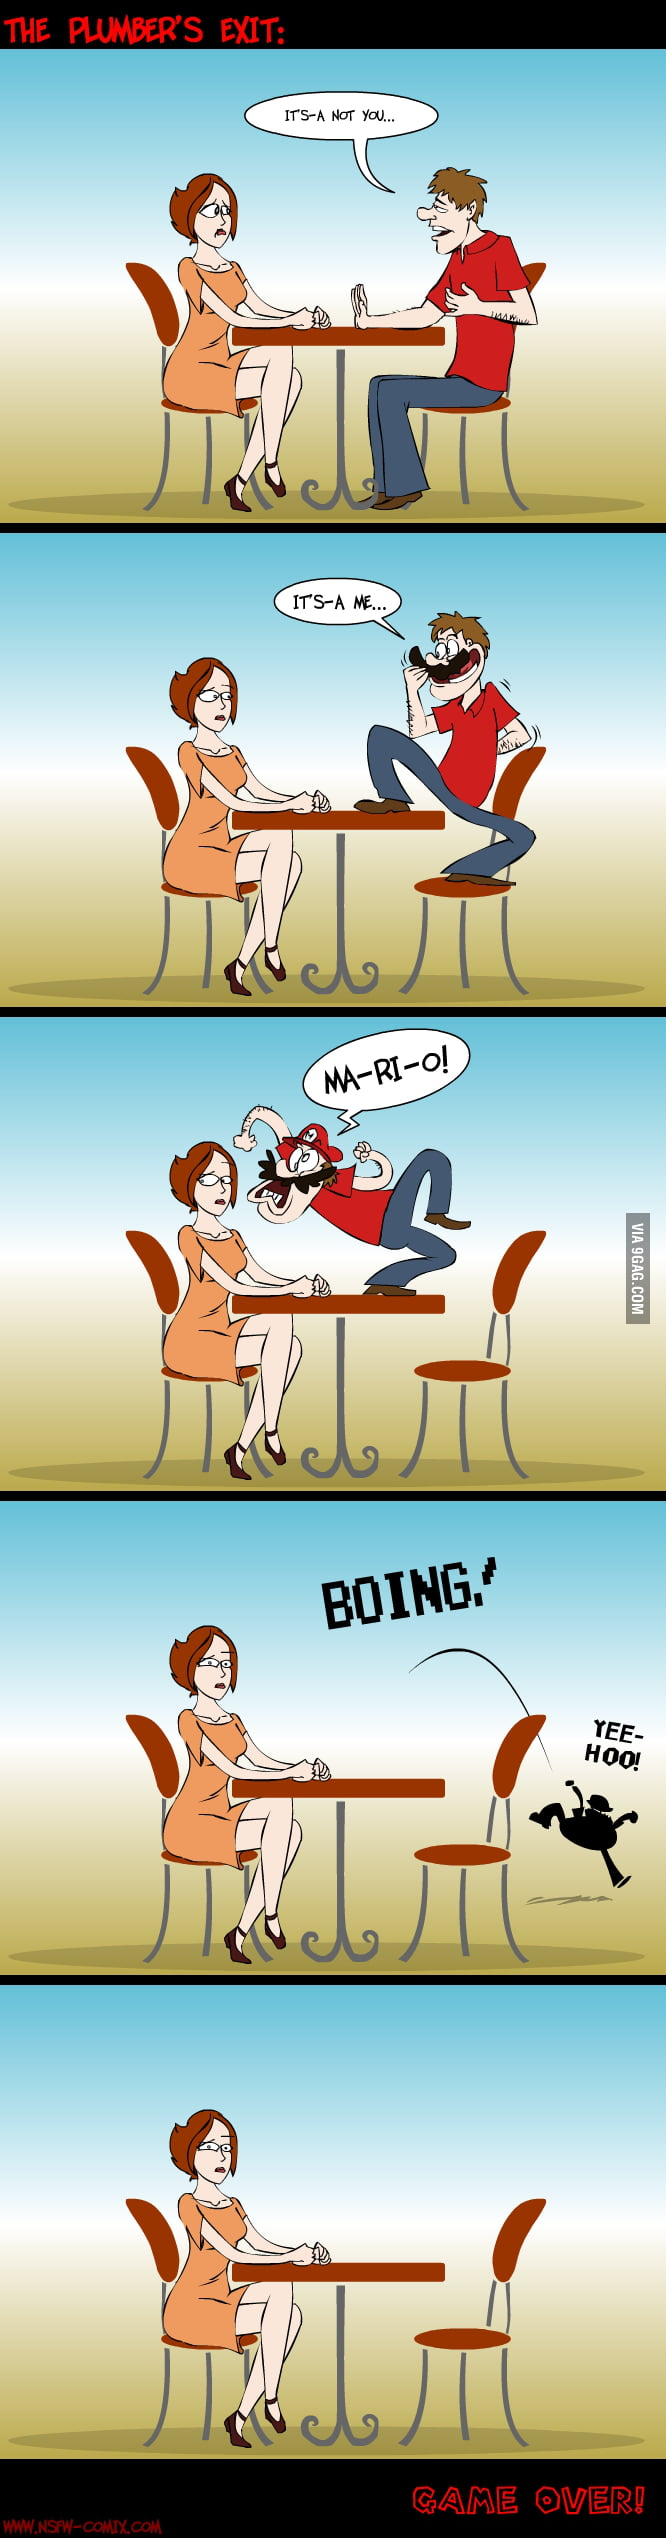 Breaking up - Mario style